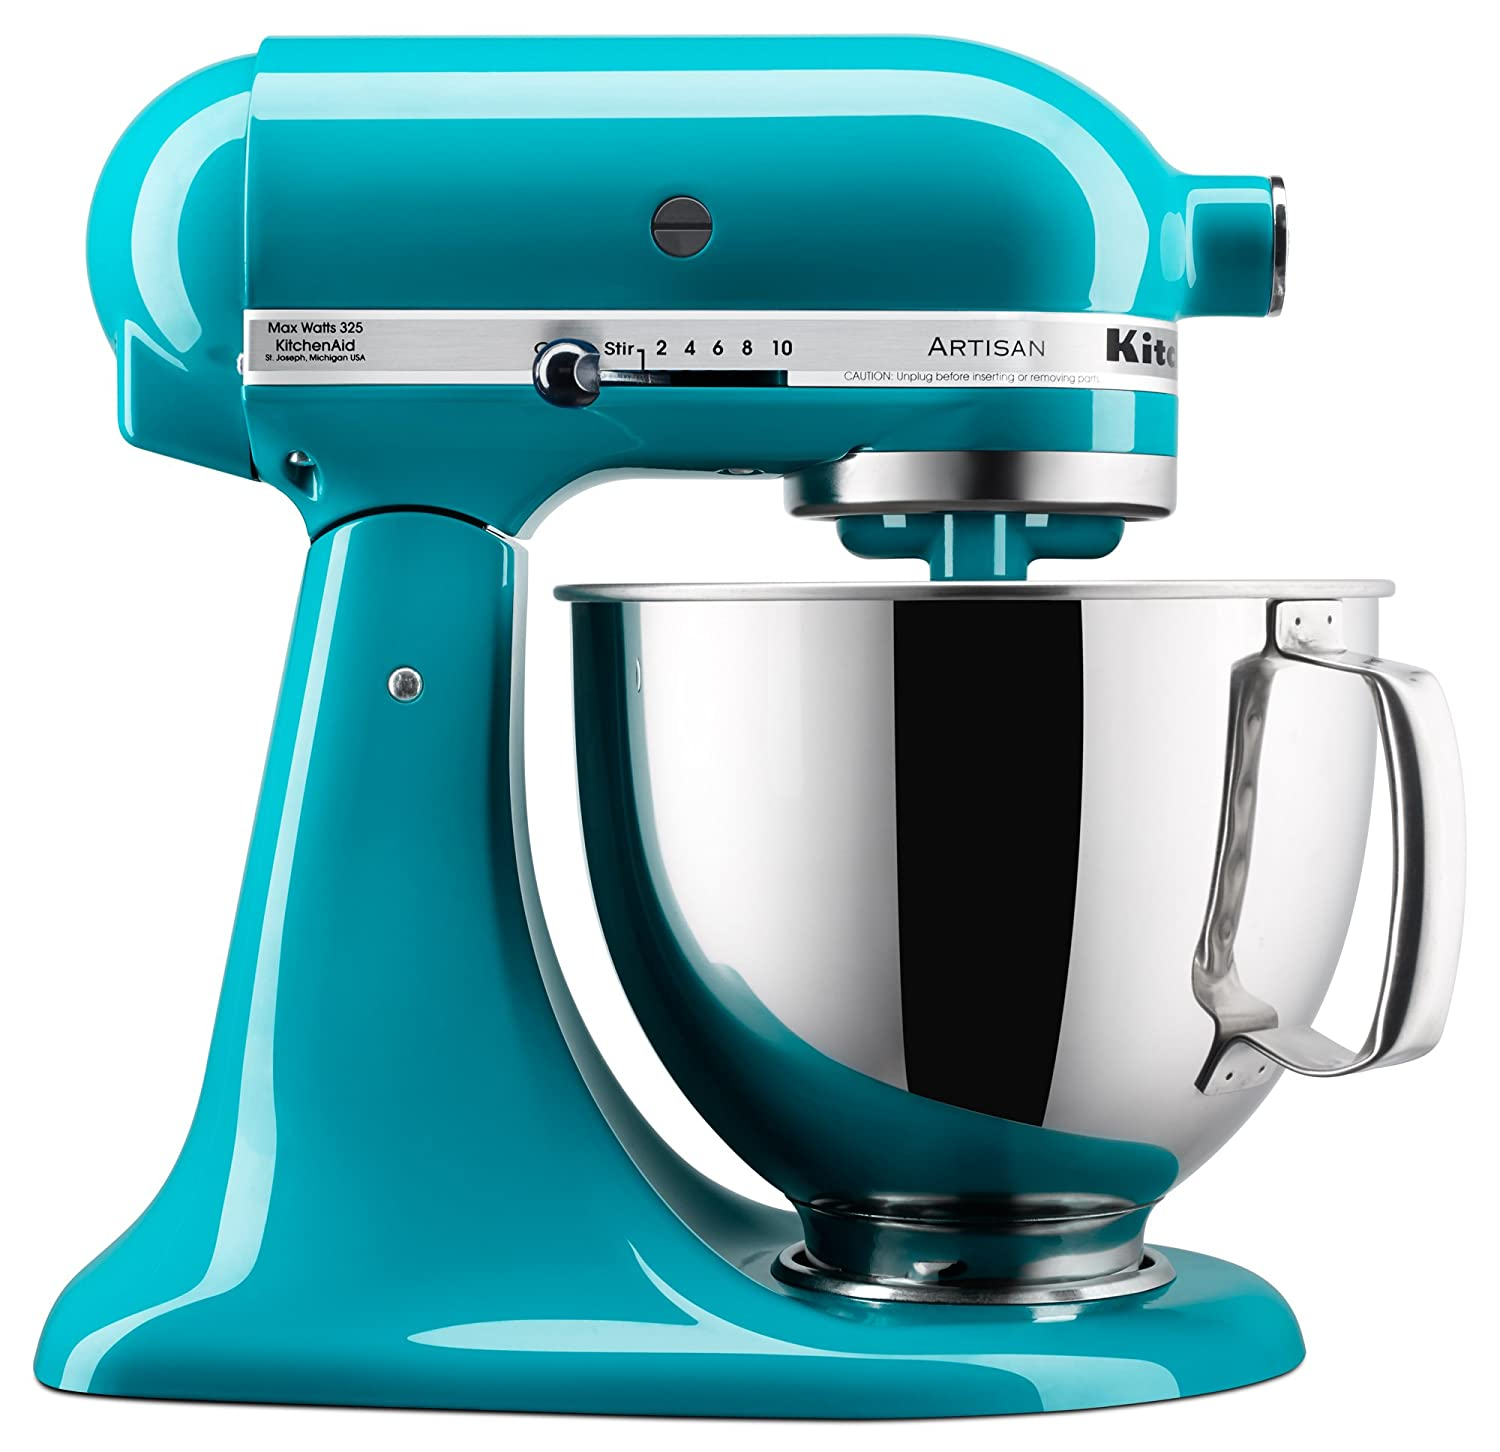 Amazon.com: KitchenAid KSM150PSON Stand Mixer, 5 Quart, Ocean Drive on rachael ray products, ge products, toastmaster products, general electric products, corian products, wolf products, whirlpool products, braun products, global products, imperial products, marvel products, sears products, norpro products, kirkland products, lynx products, creative bath products, subzero products, tassimo products, hitachi products, jcpenney products,